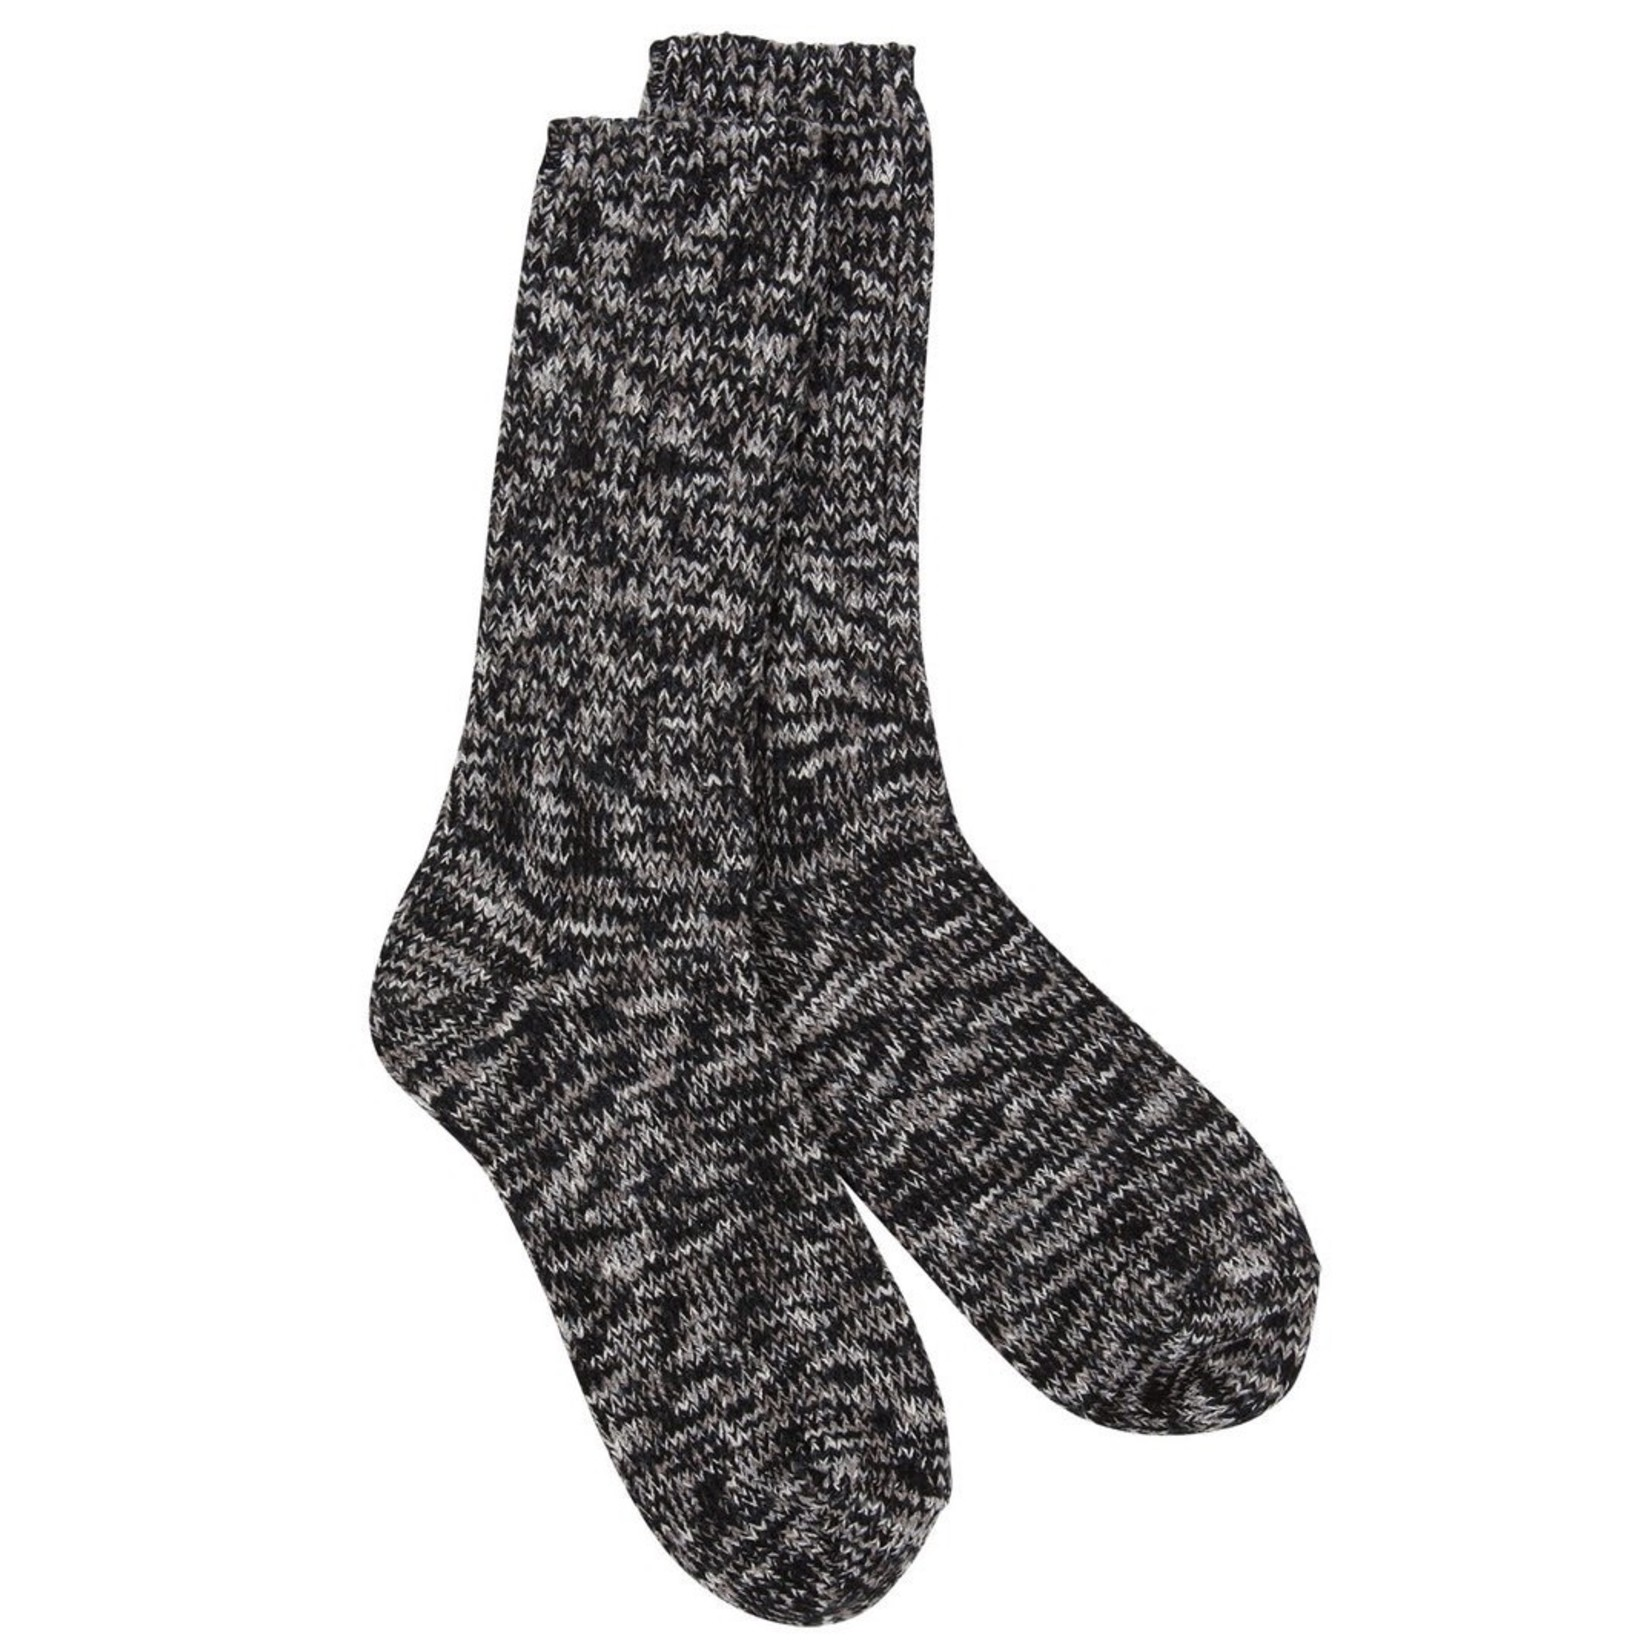 Crescent Sock Company Socks: Weekend Collection